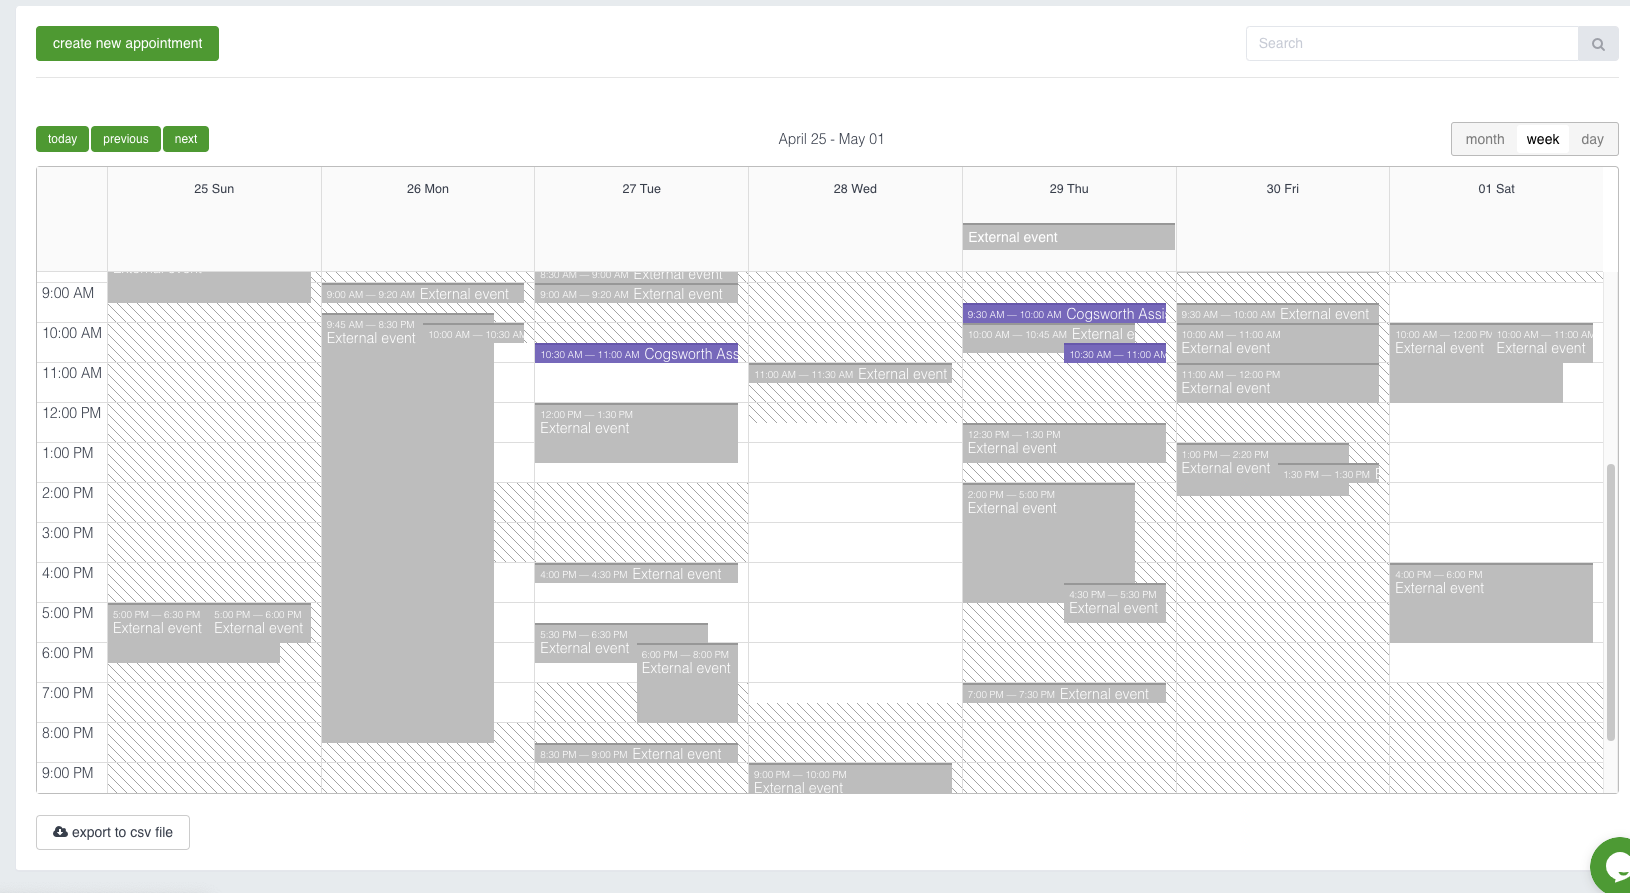 Cogsworth Software - Backend appointments overview